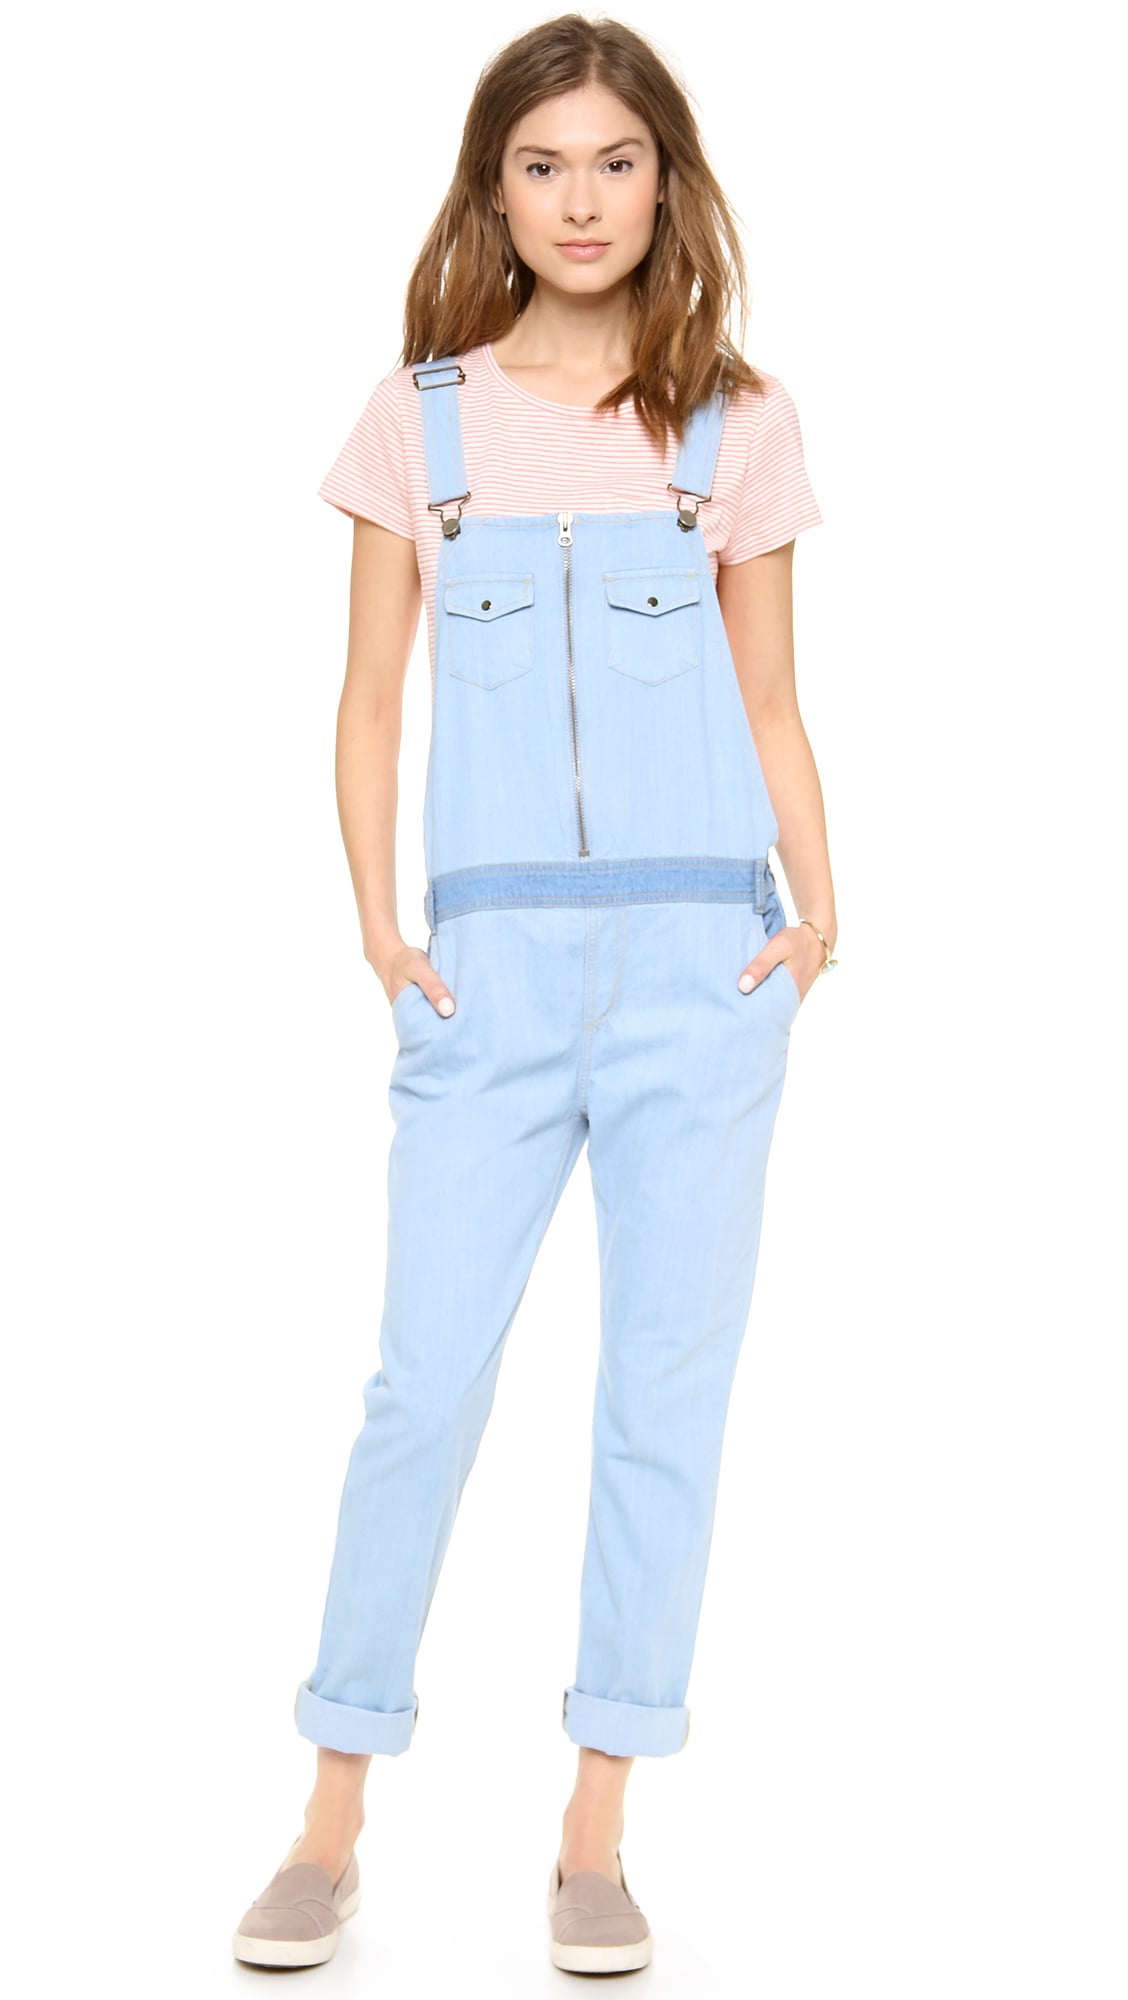 April May light denim overalls ($317)